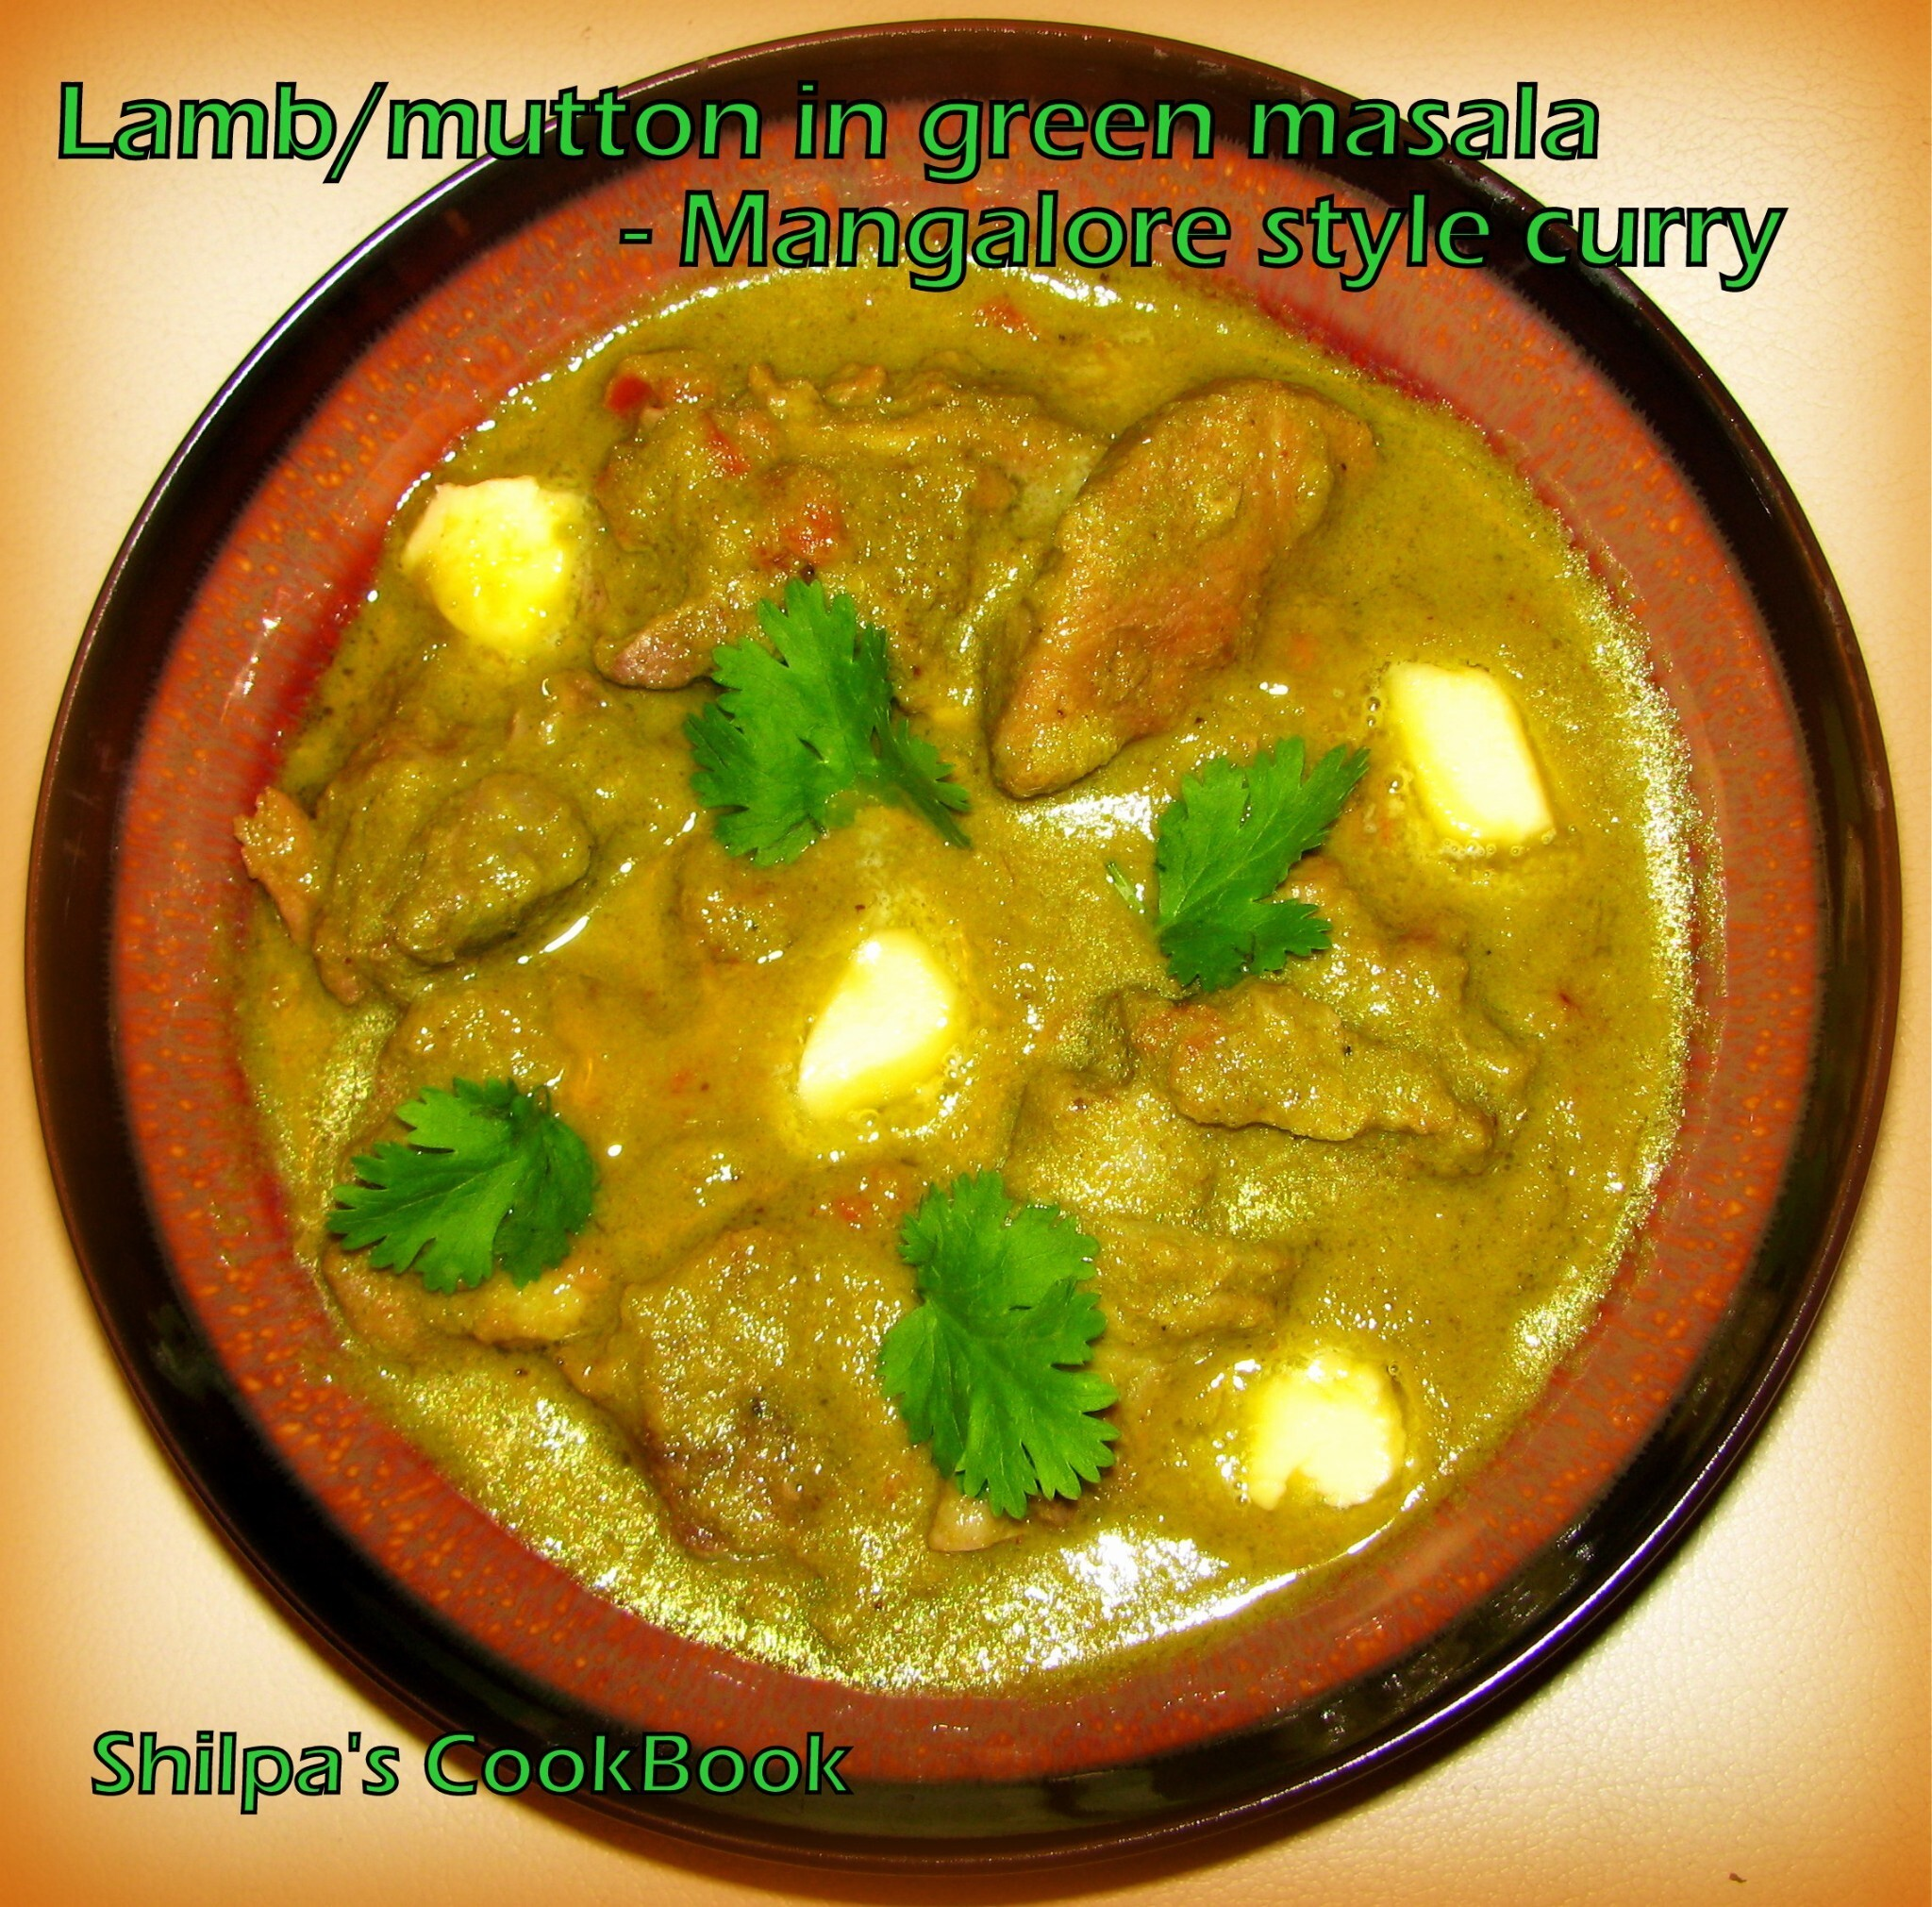 Mutton in Green masala - Mangalore style curry